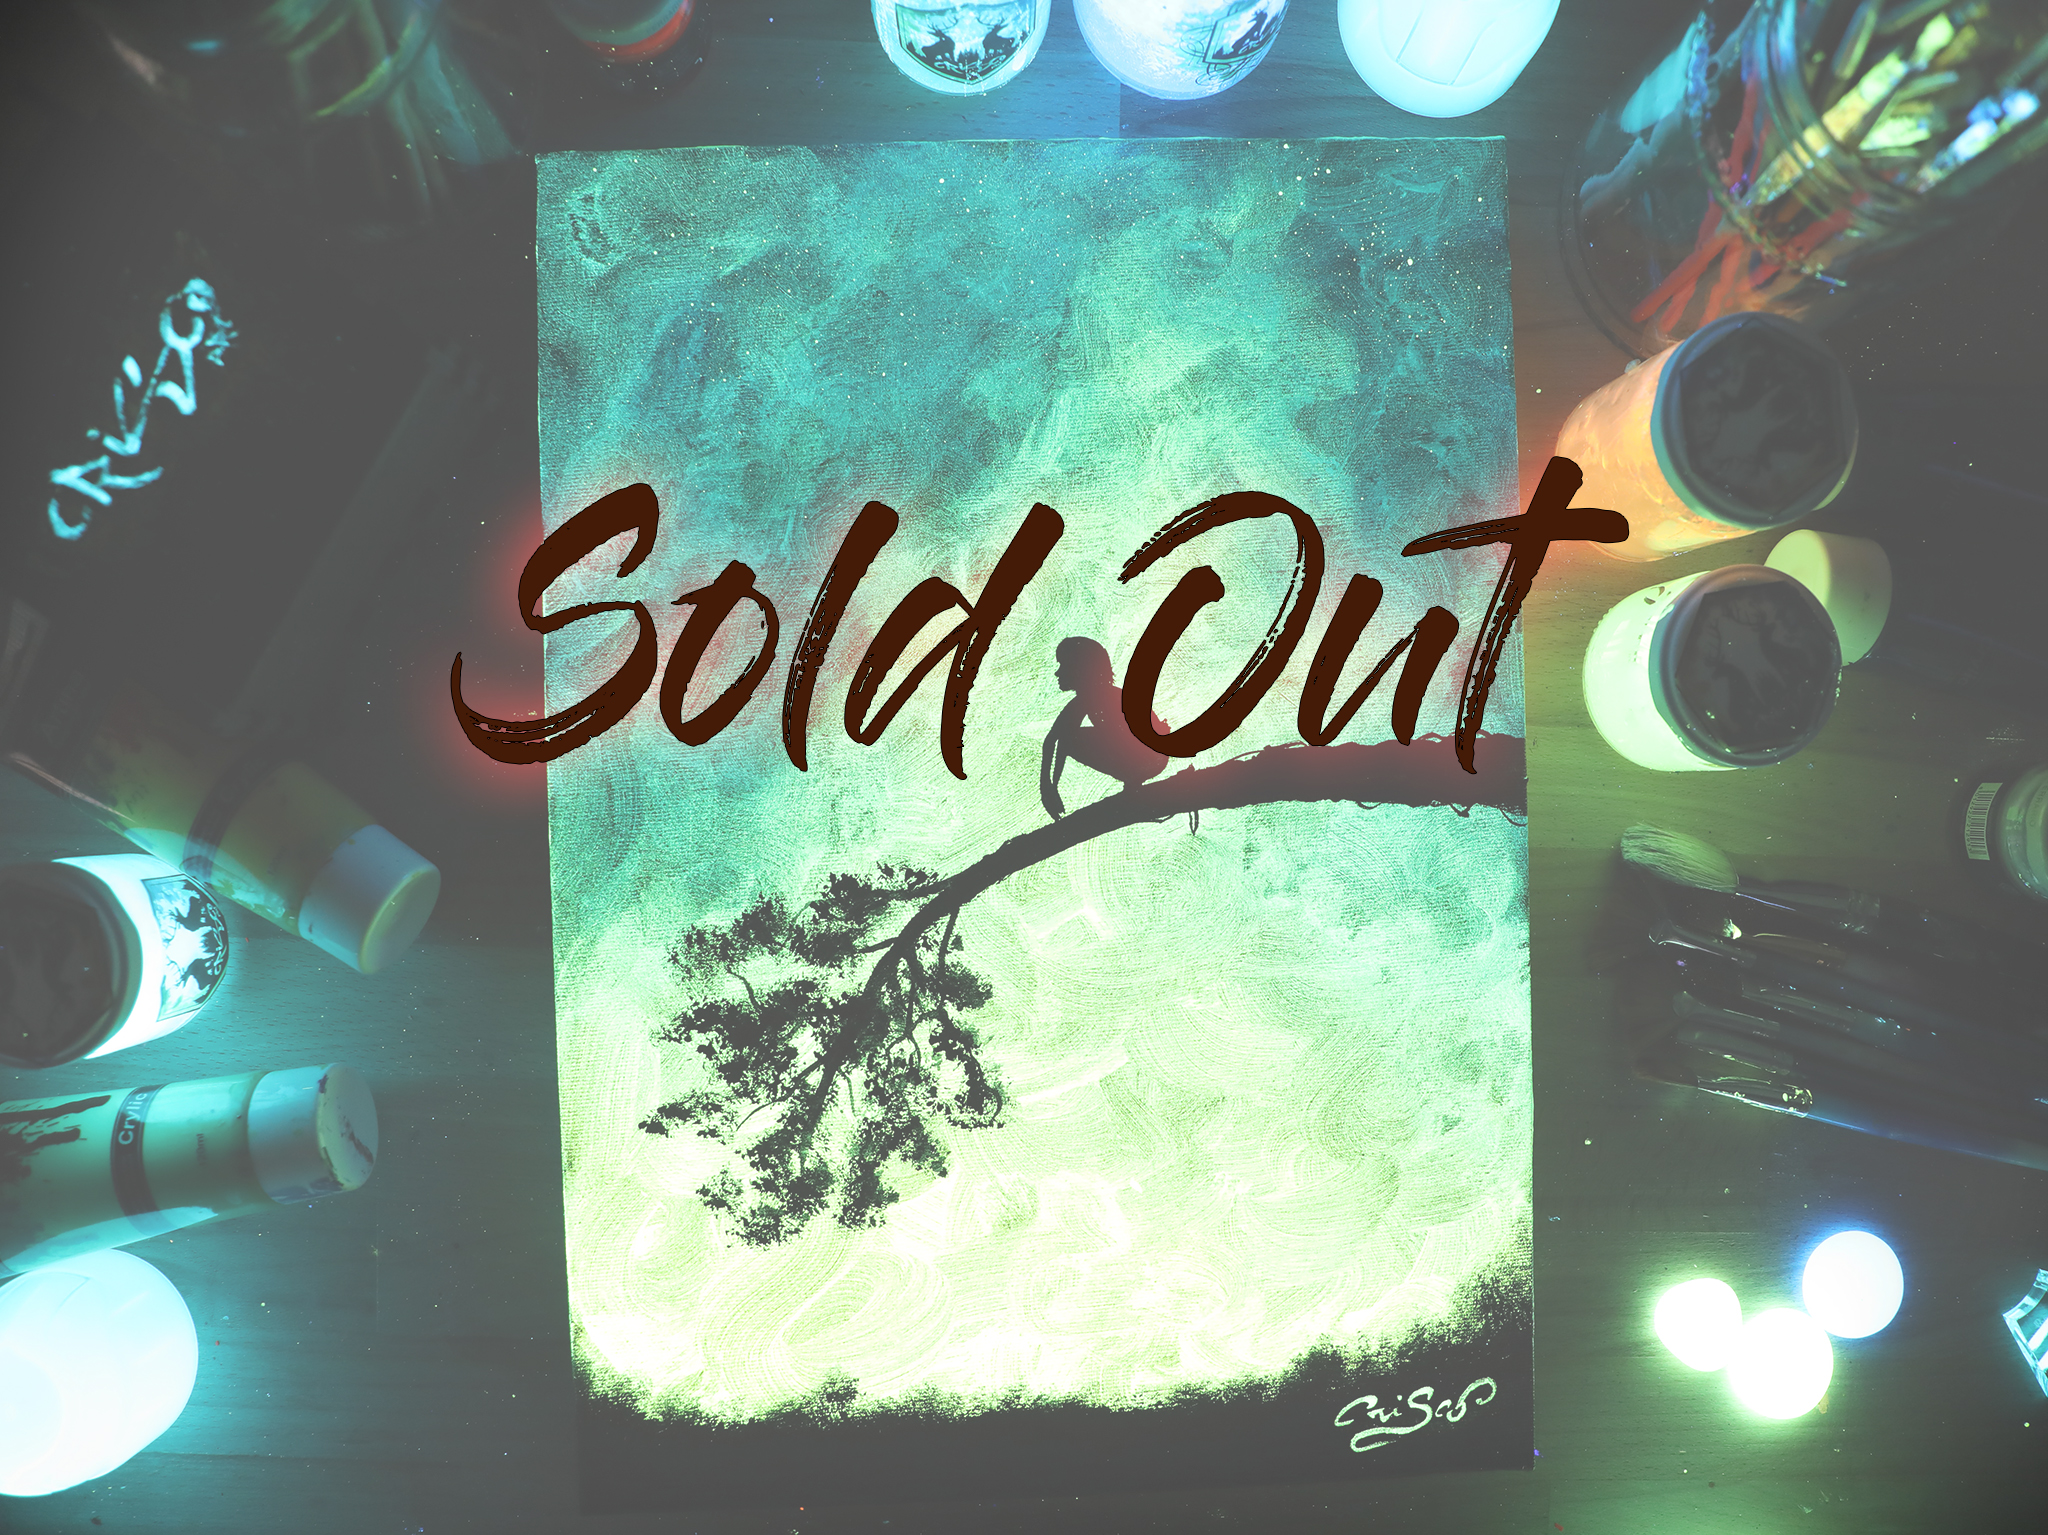 sold out fileMOGLI